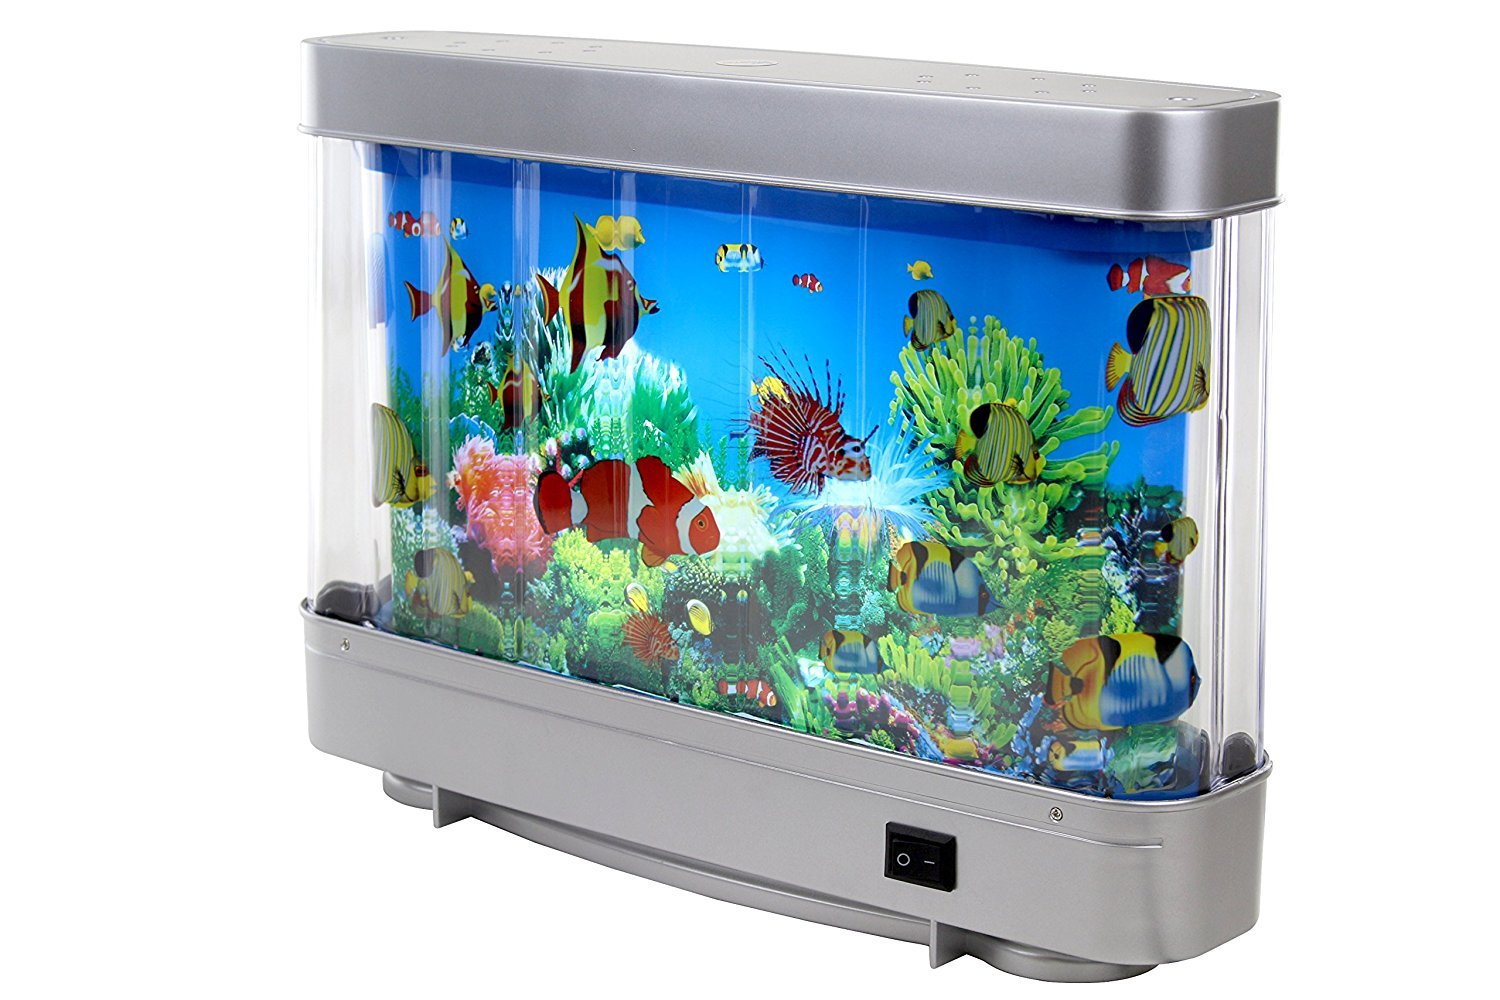 Lightahead Artificial Tropical Fish Aquarium decorativa proyección Virtual océano en movimiento: Amazon.es: Productos para mascotas